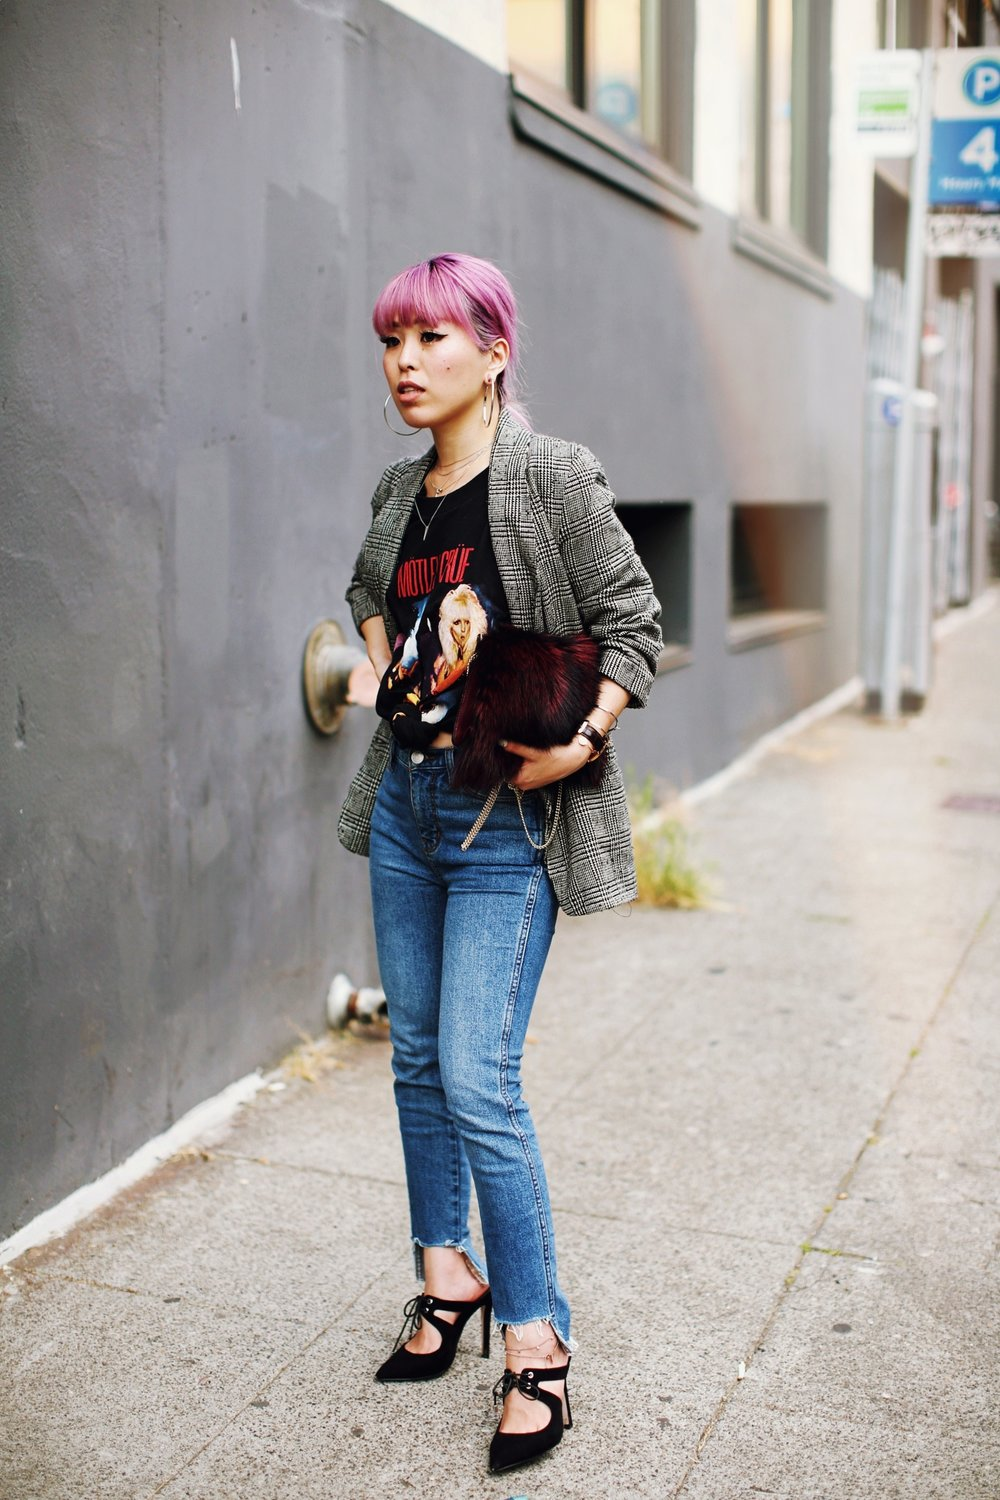 Nordstrom Plaid Blazer_Vintage Rockband Tee_Free People High Waisted Jeans_Daniel Wellington Watch_ASOS Black Mules_DVF Fur Bag_Swarovski Remix Collection Smiling Face_Pink Hair_Aika's Love Closet_Seattle Fashion Style Blogger_Japanese 11